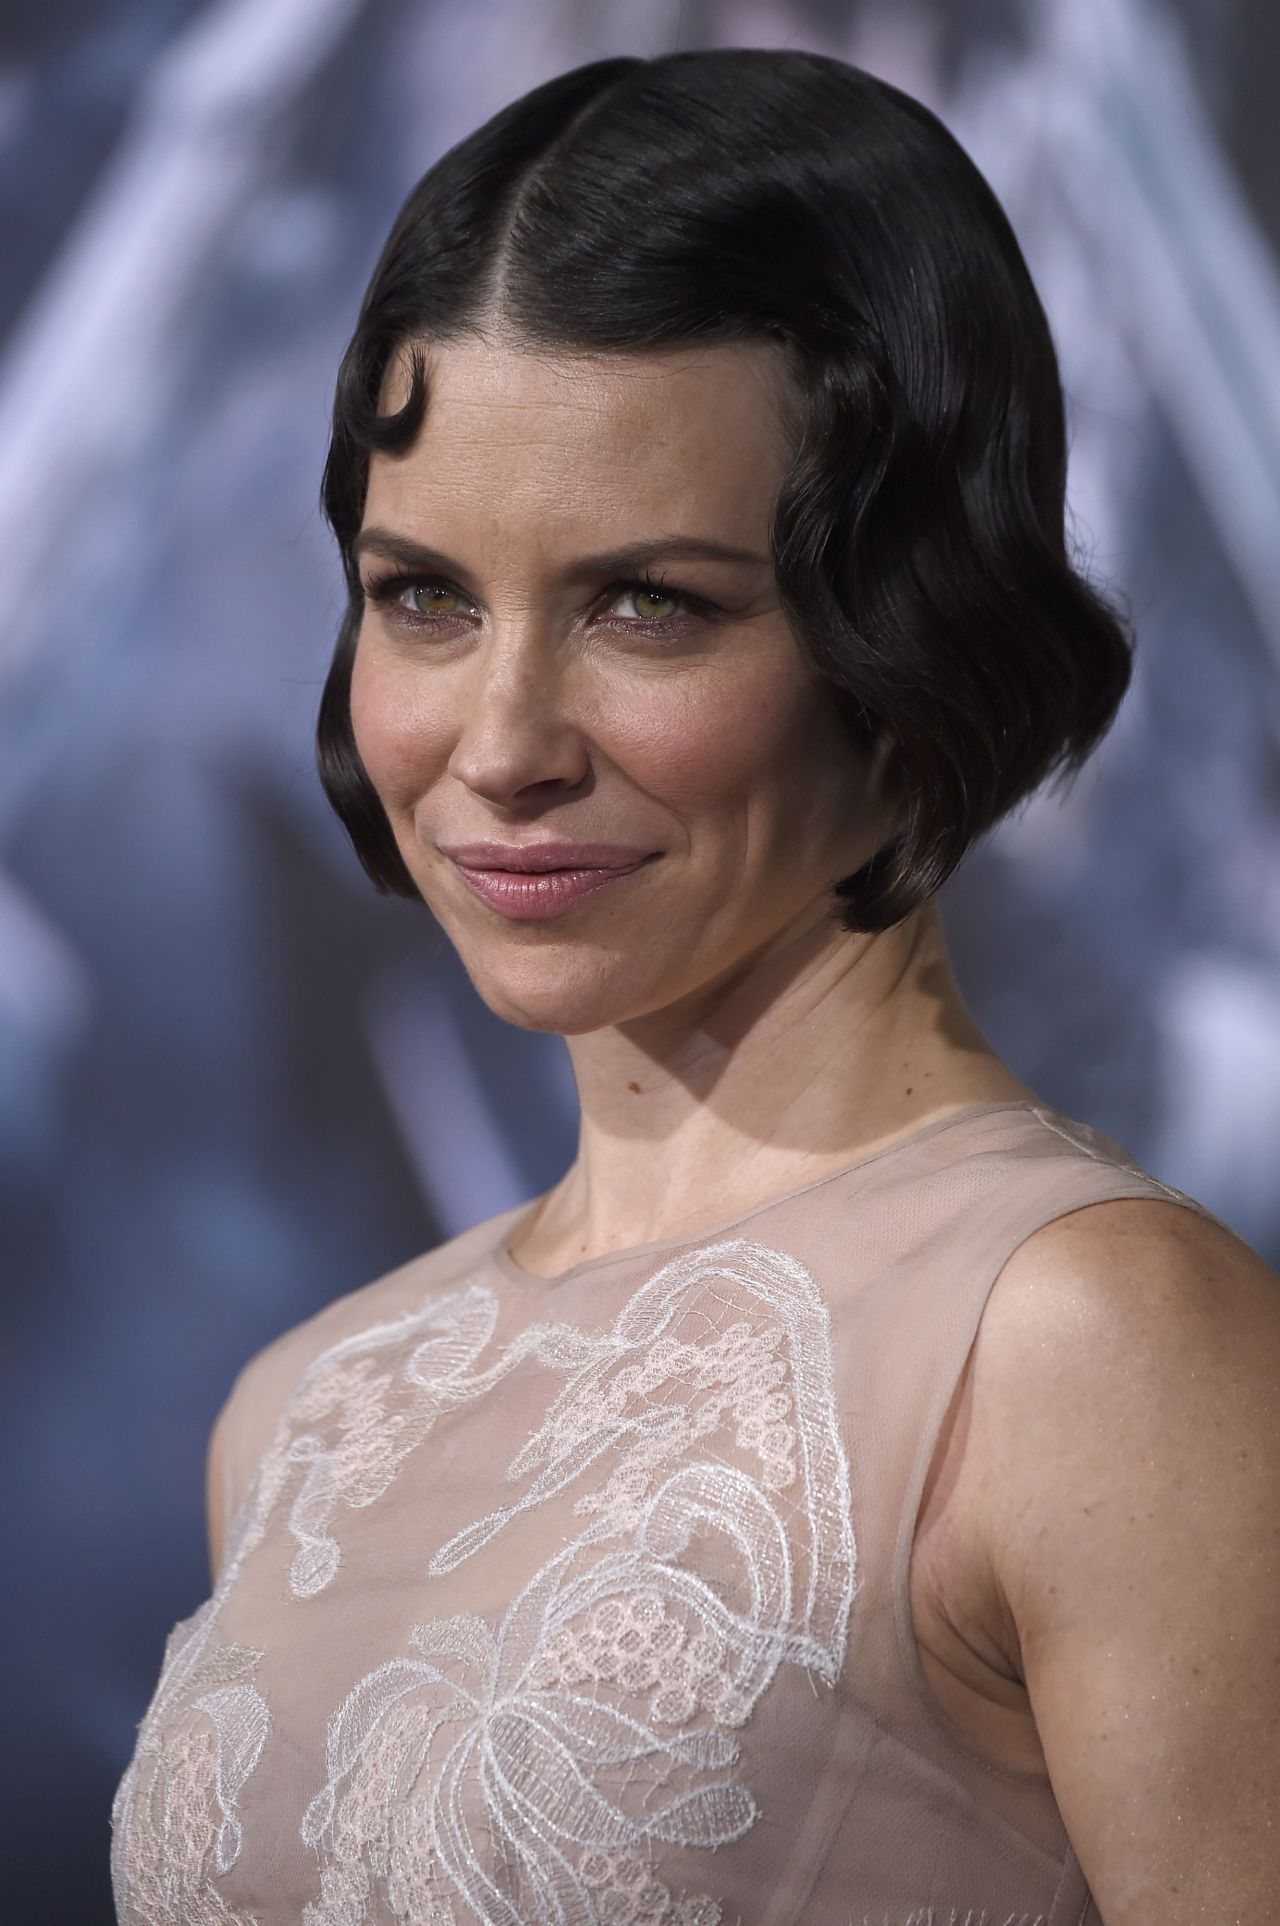 Evangeline Lilly The Hobbit The Battle Of The Five Armies Premiere In Hollywood